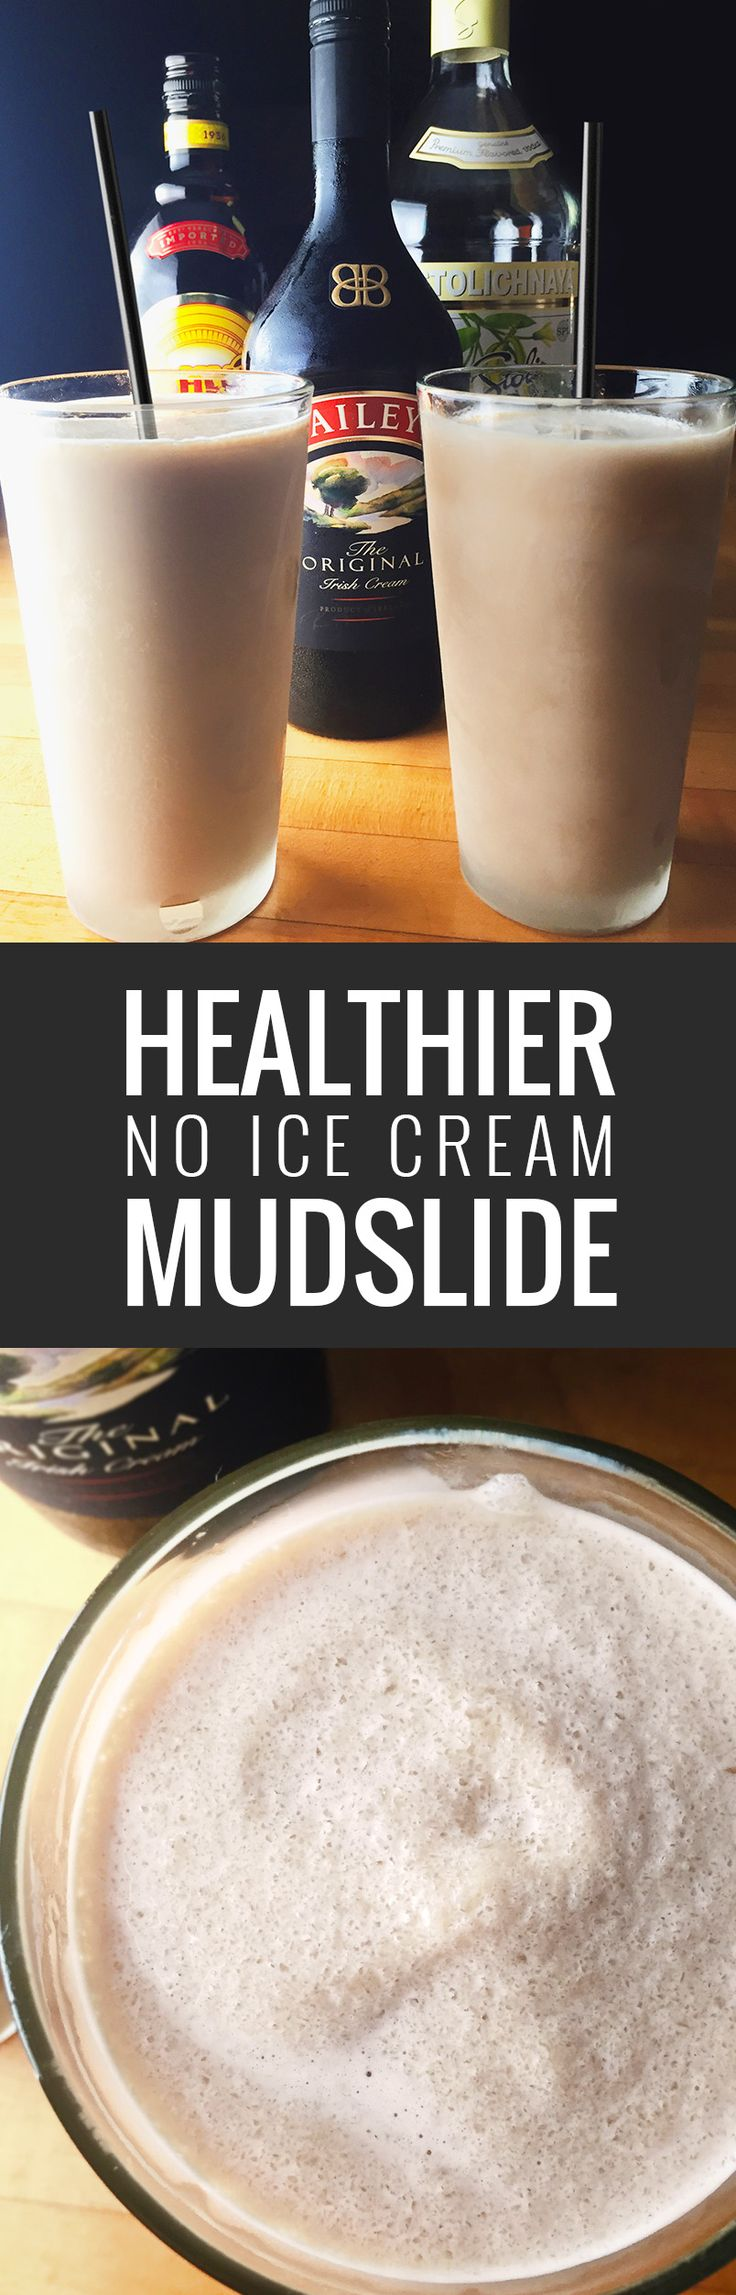 A frozen mudslide recipe with half the calories of most mudslides. All you need is vodka, coffee liquor, Irish cream and ice.